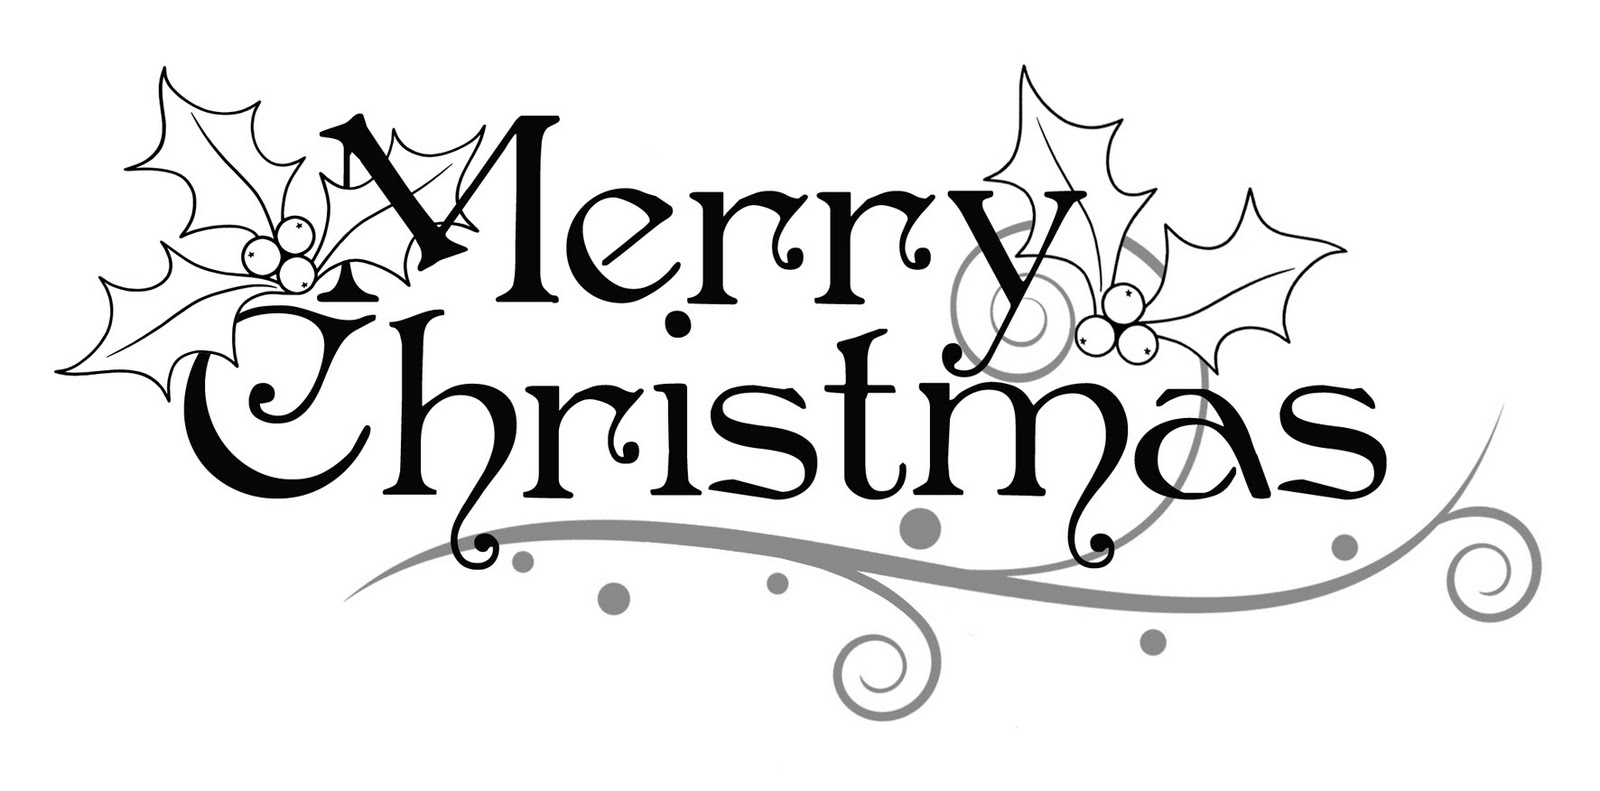 1600x791 Merry Christmas Clipart Black And White Fun For Christmas